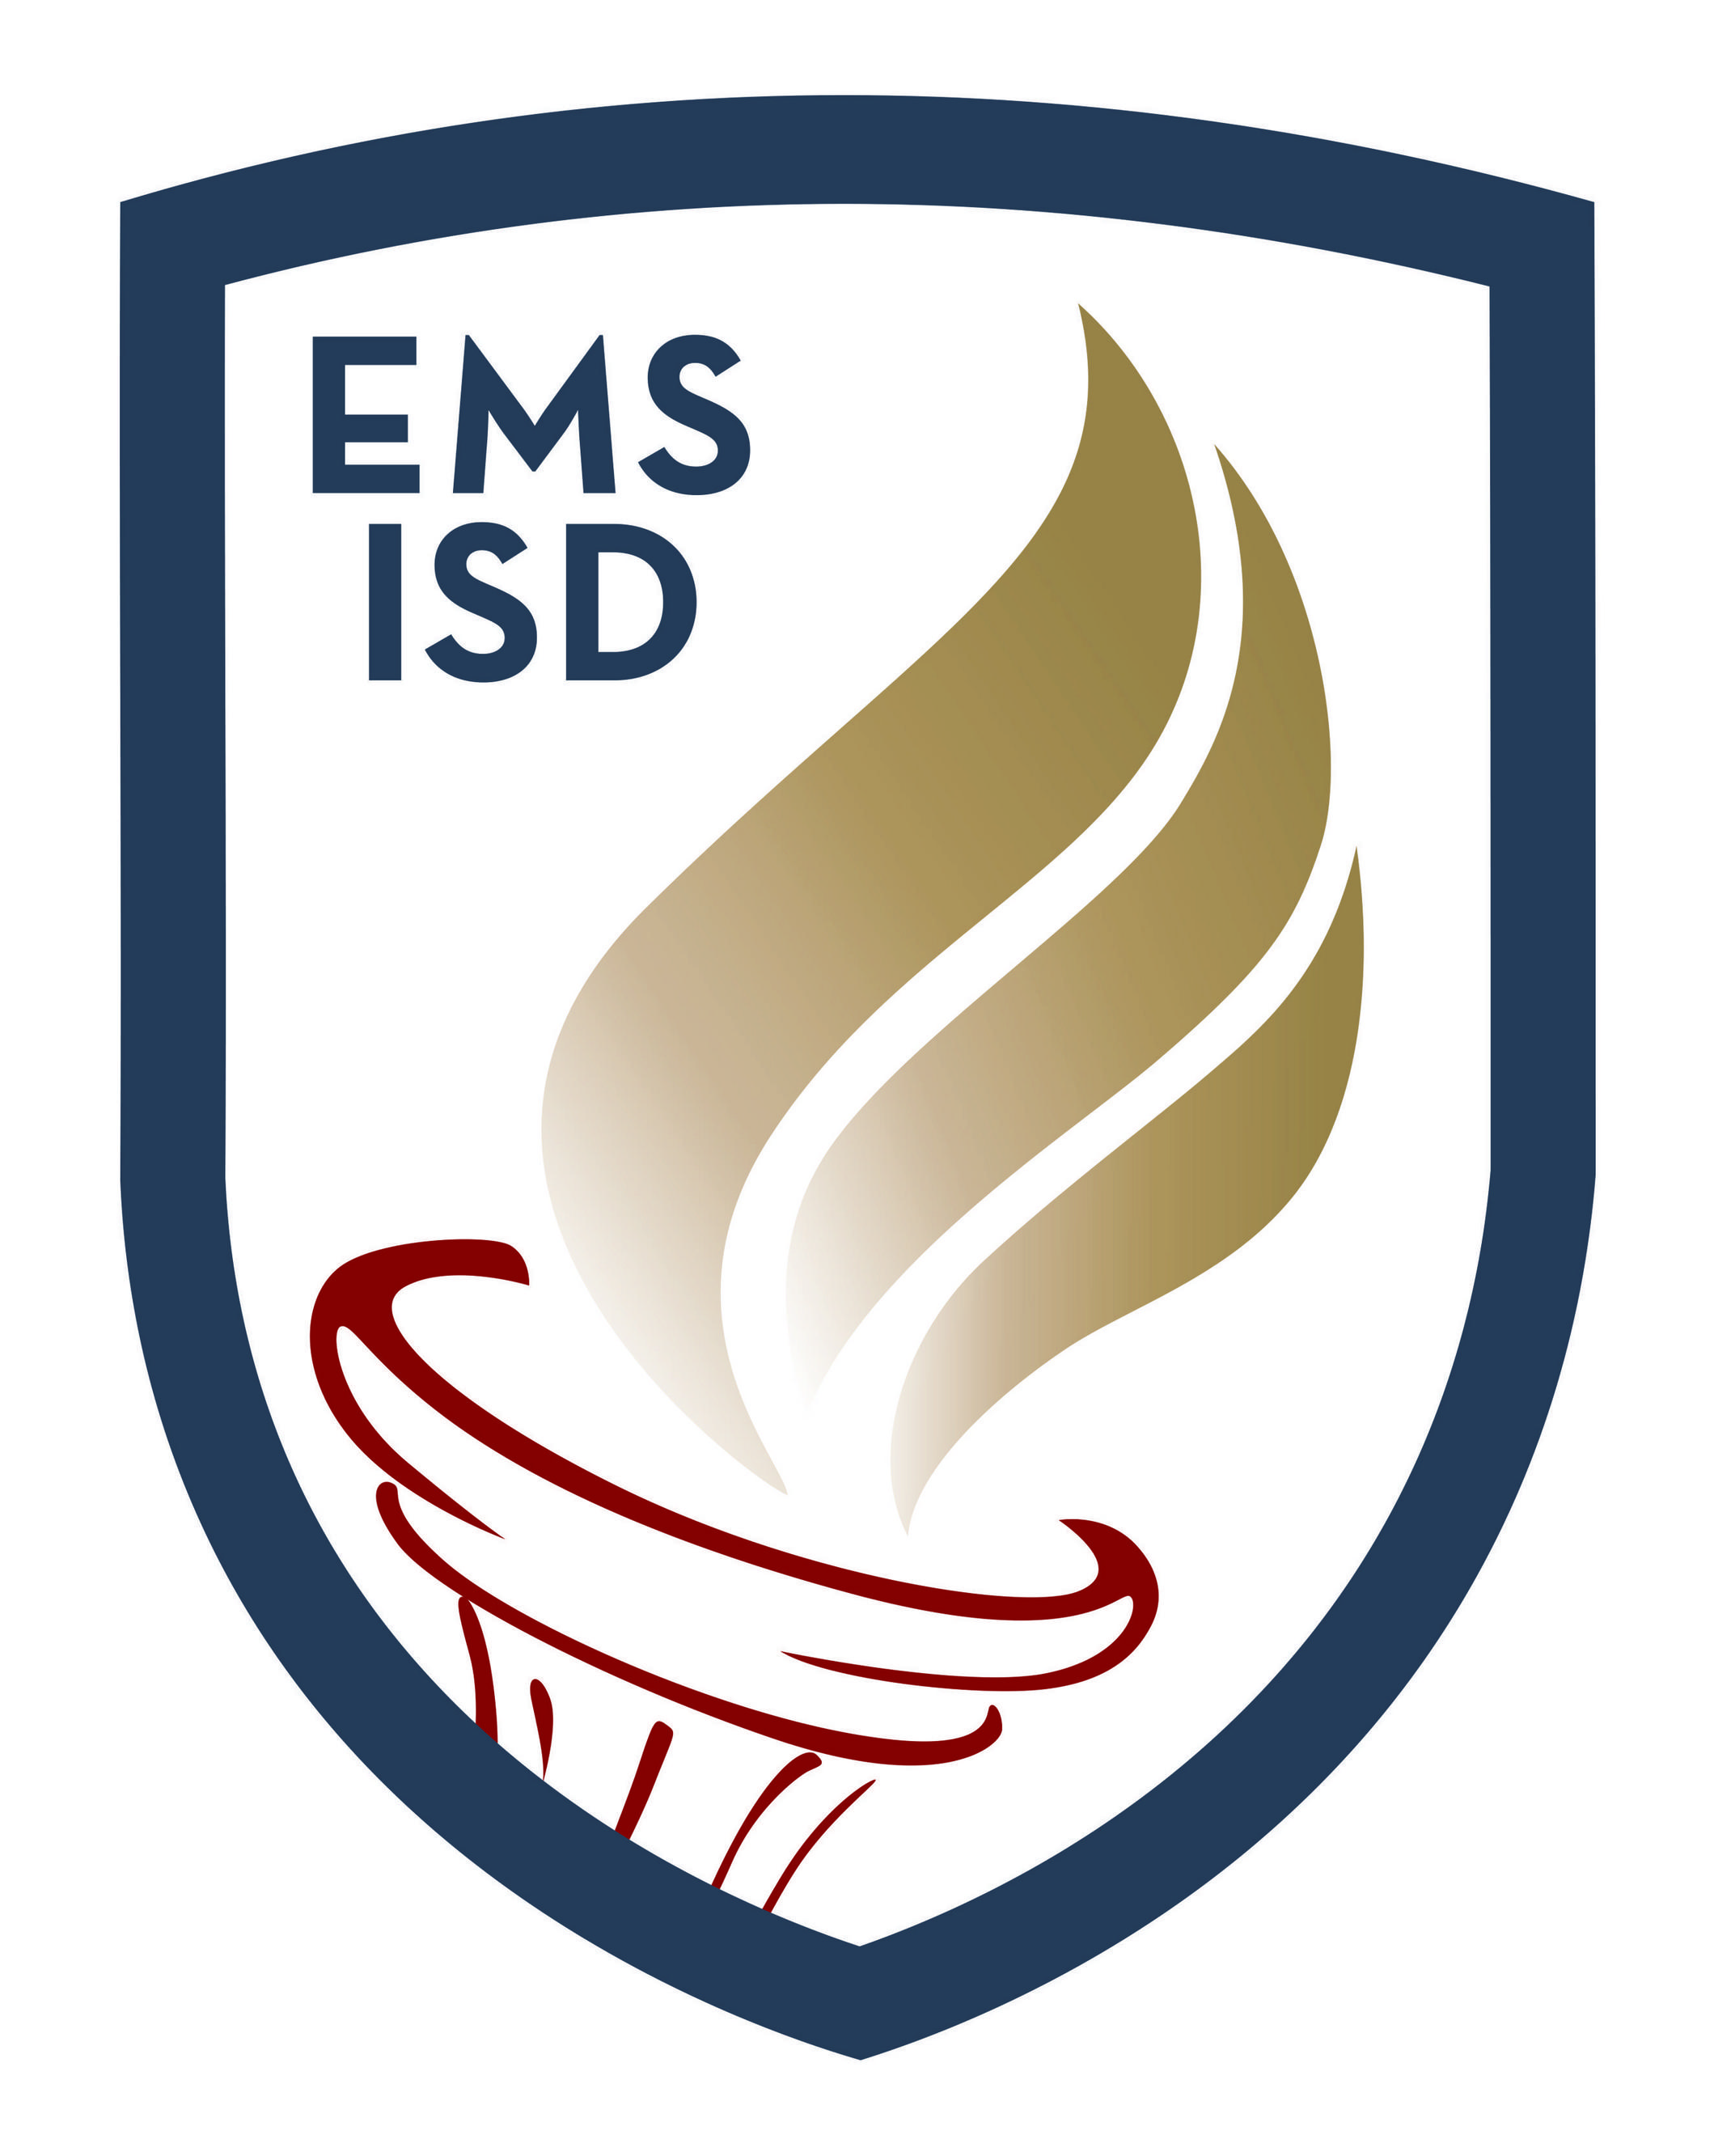 Communications & Marketing / EMS ISD Logos and Standards